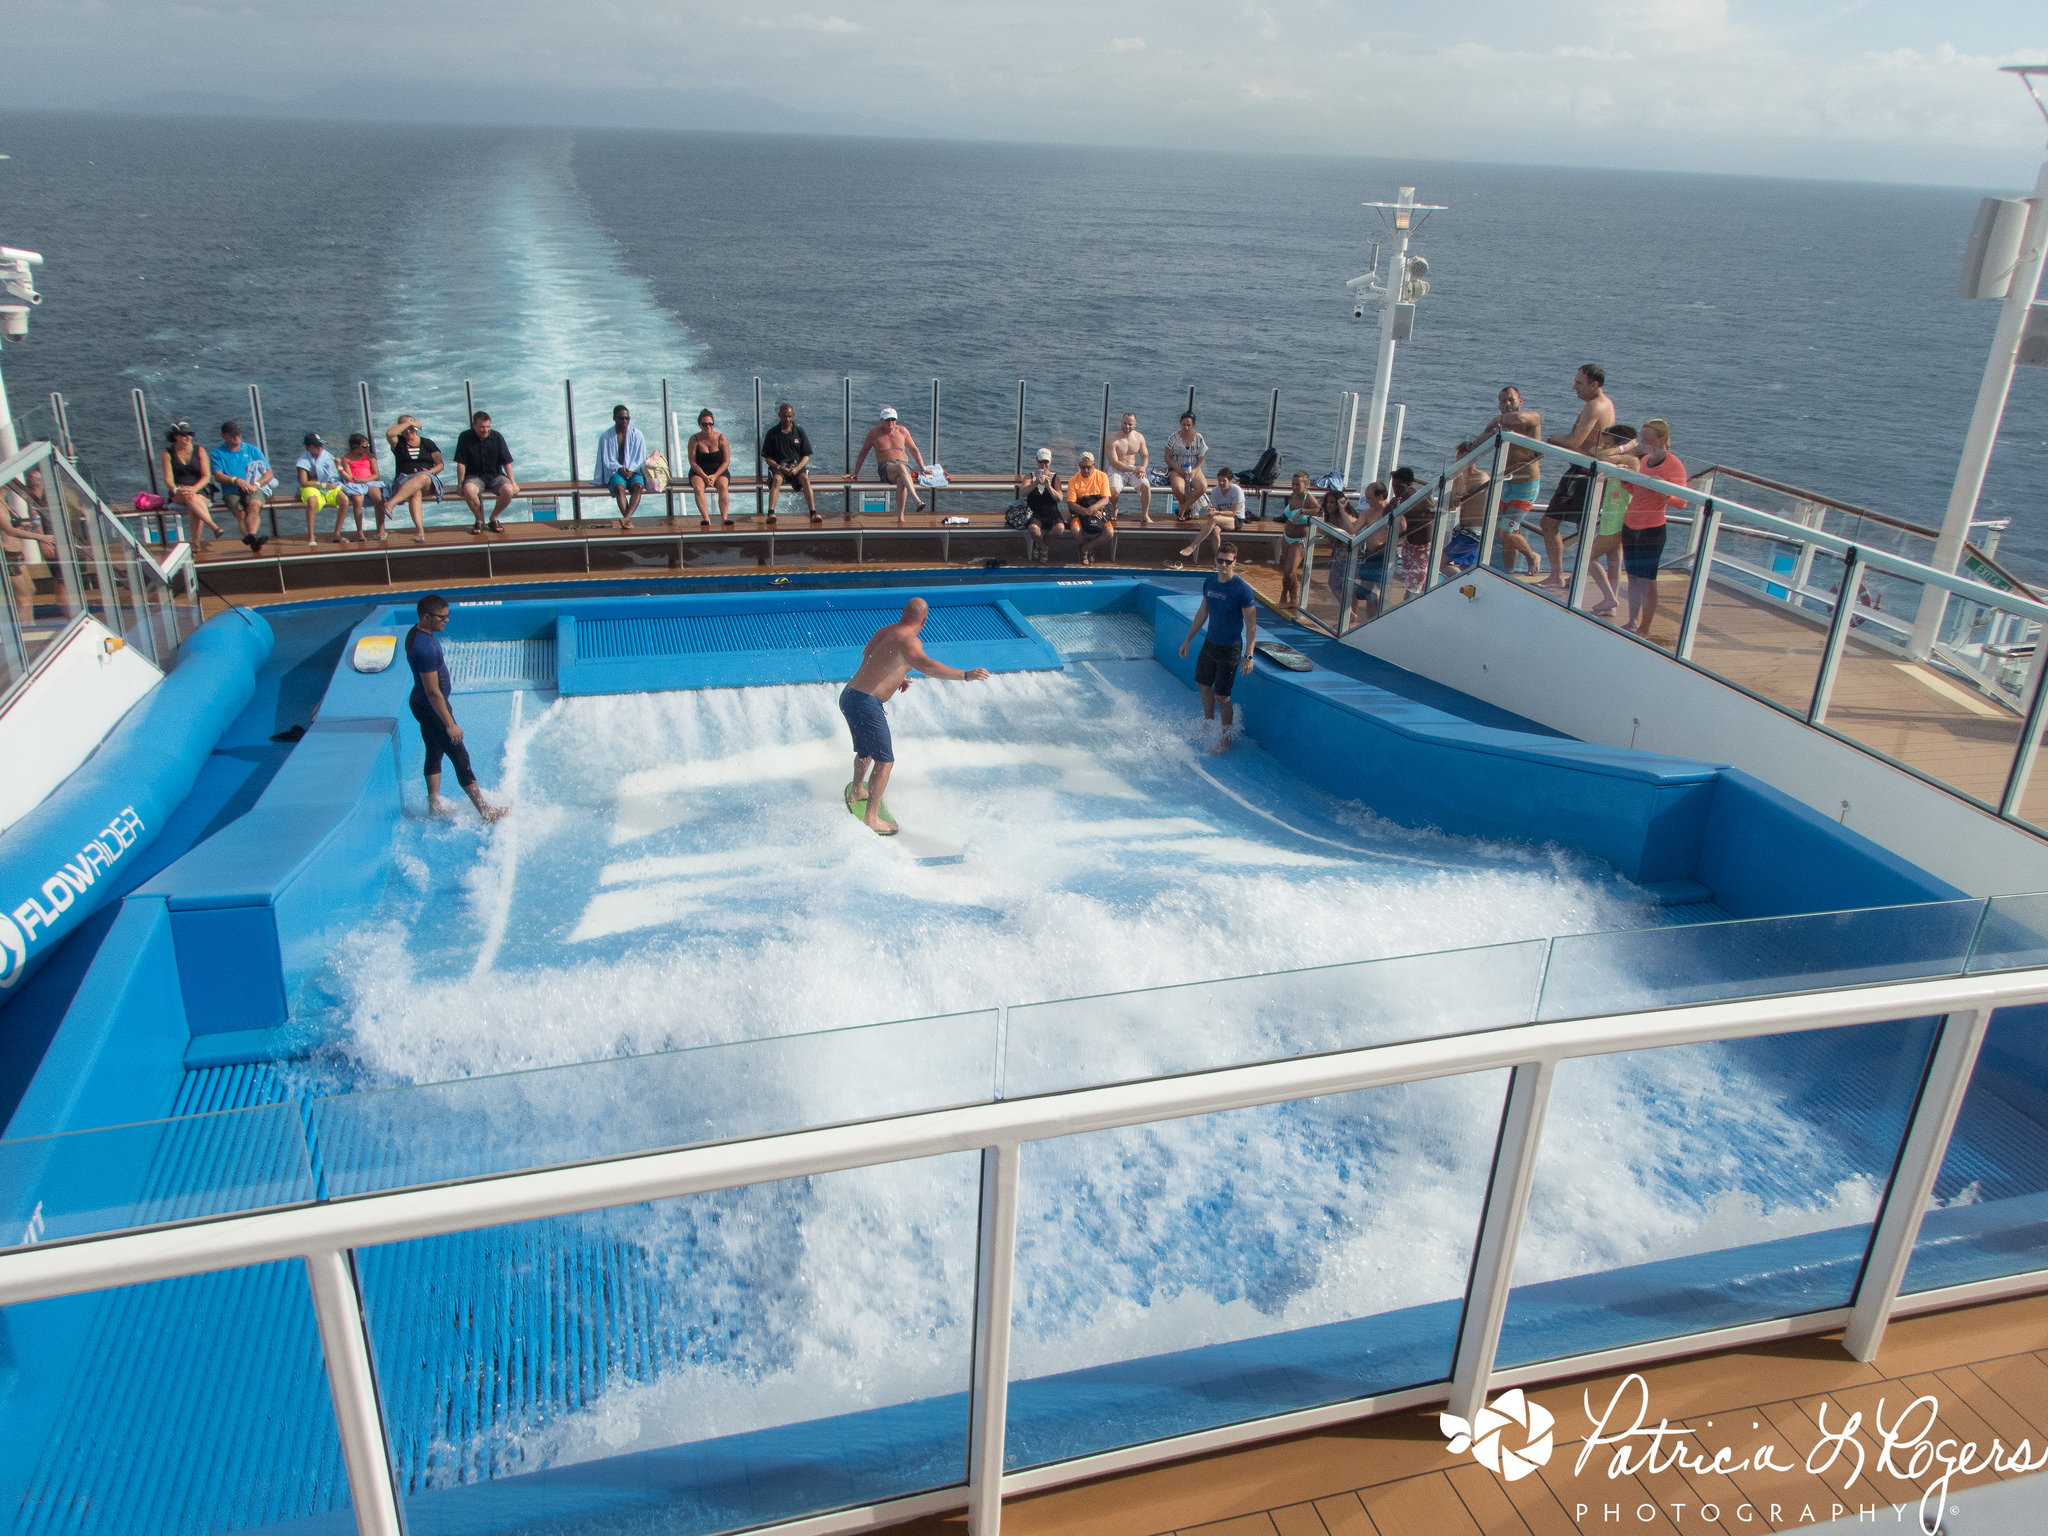 6extreme-on-board-ovationoftheseas.jpg